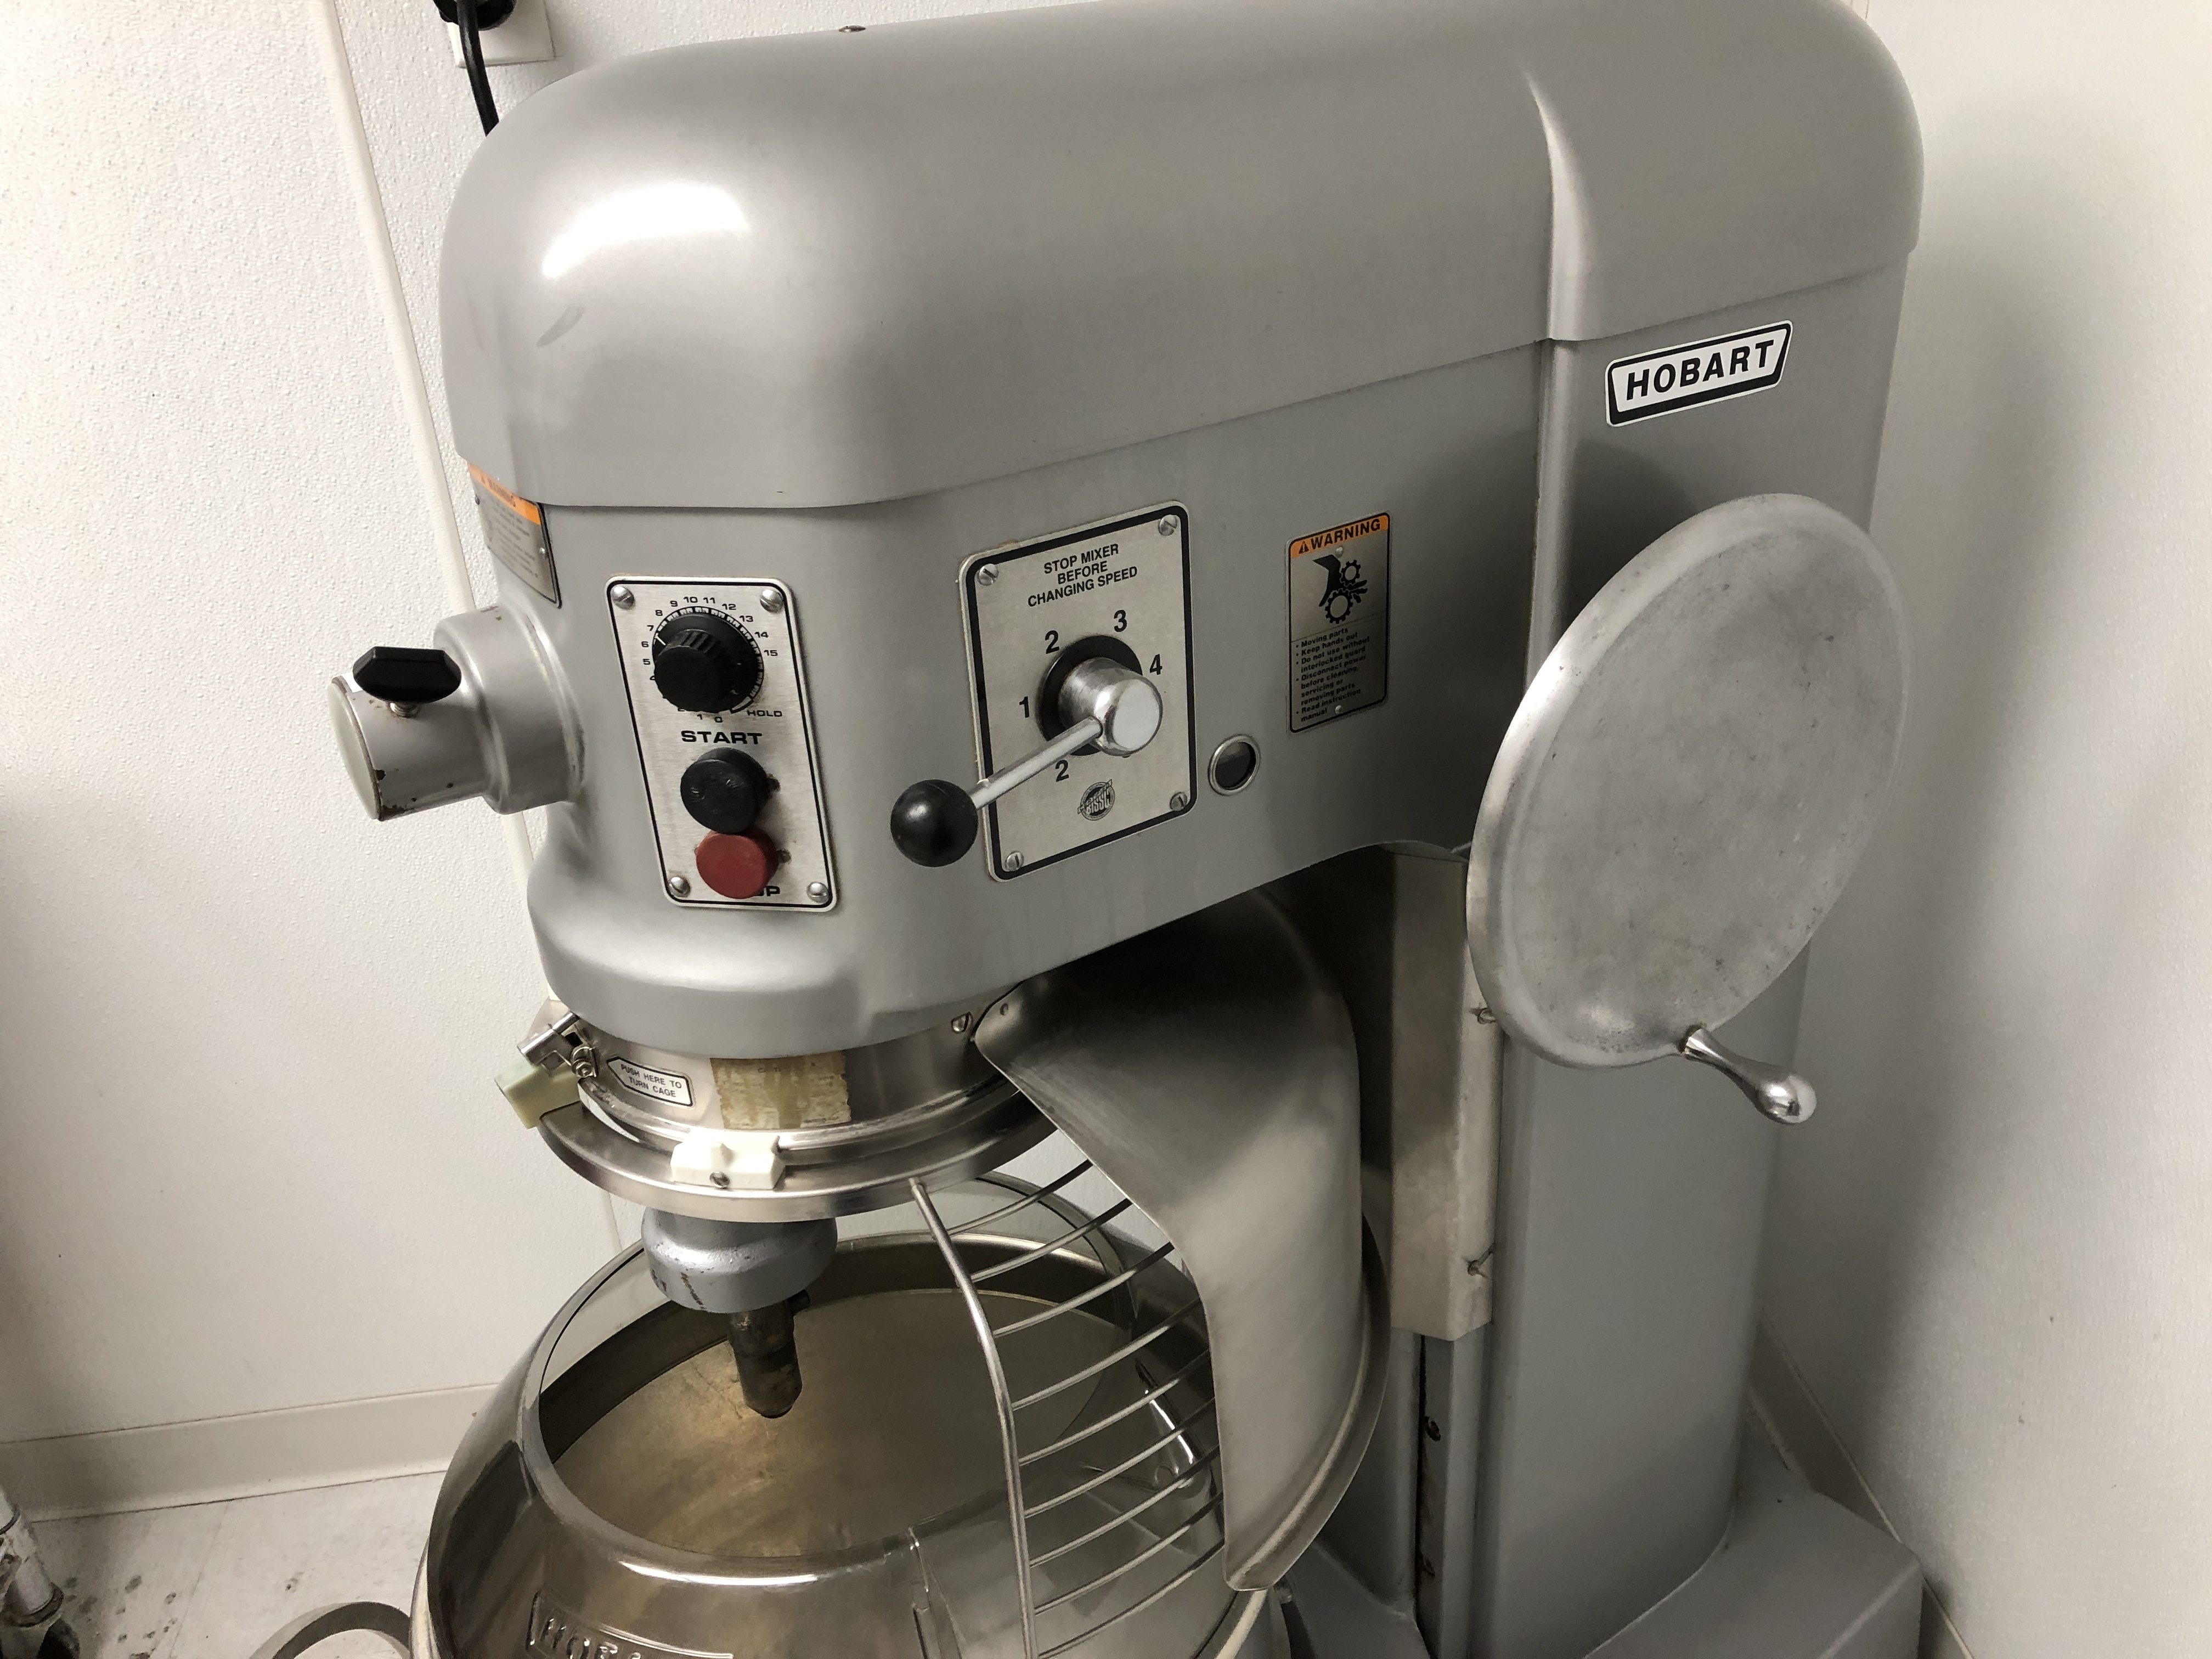 Lot 26 - Hobart L-800 80-Qt Mixer with Stainless Steel Bowl with splash guard, whip, flat beater and dough